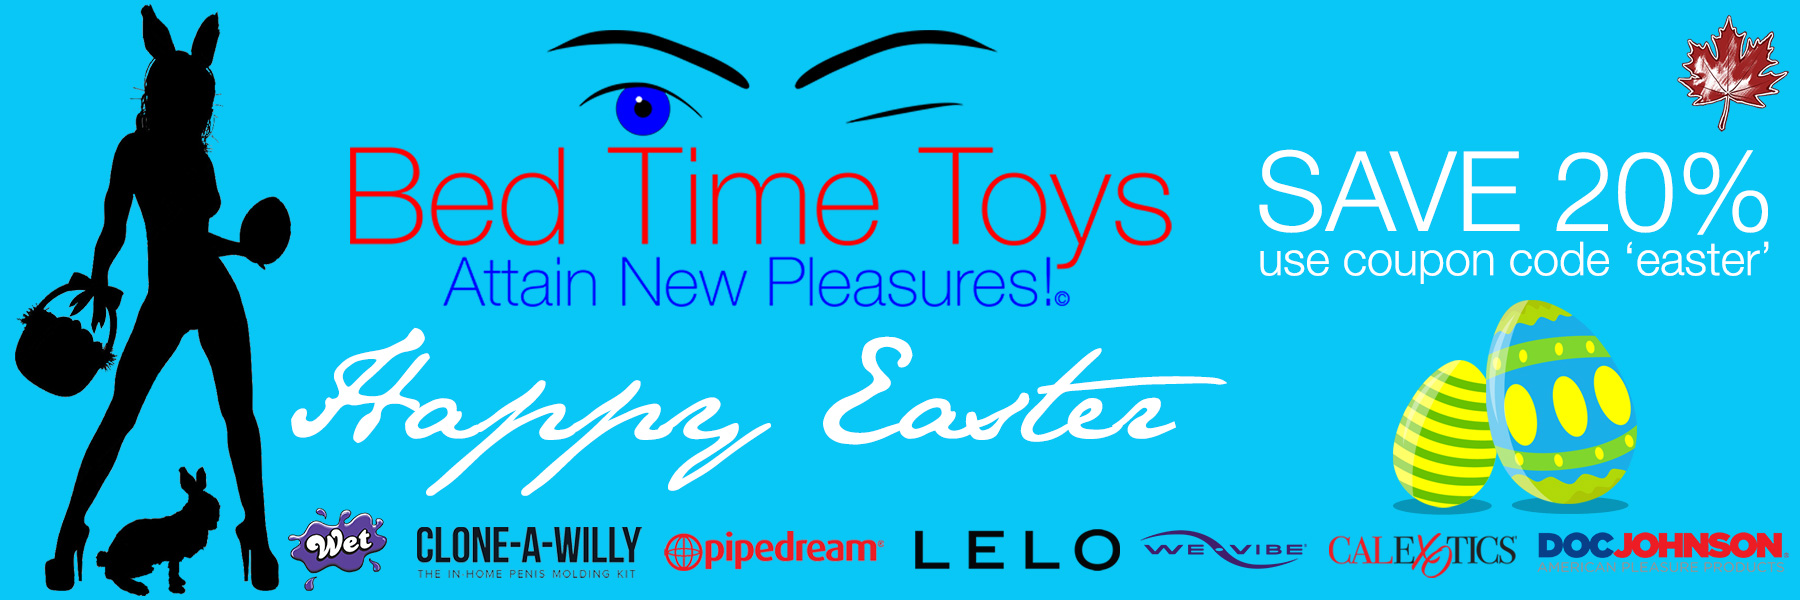 Bed Time Toys, Easter Sex Toy, Sale